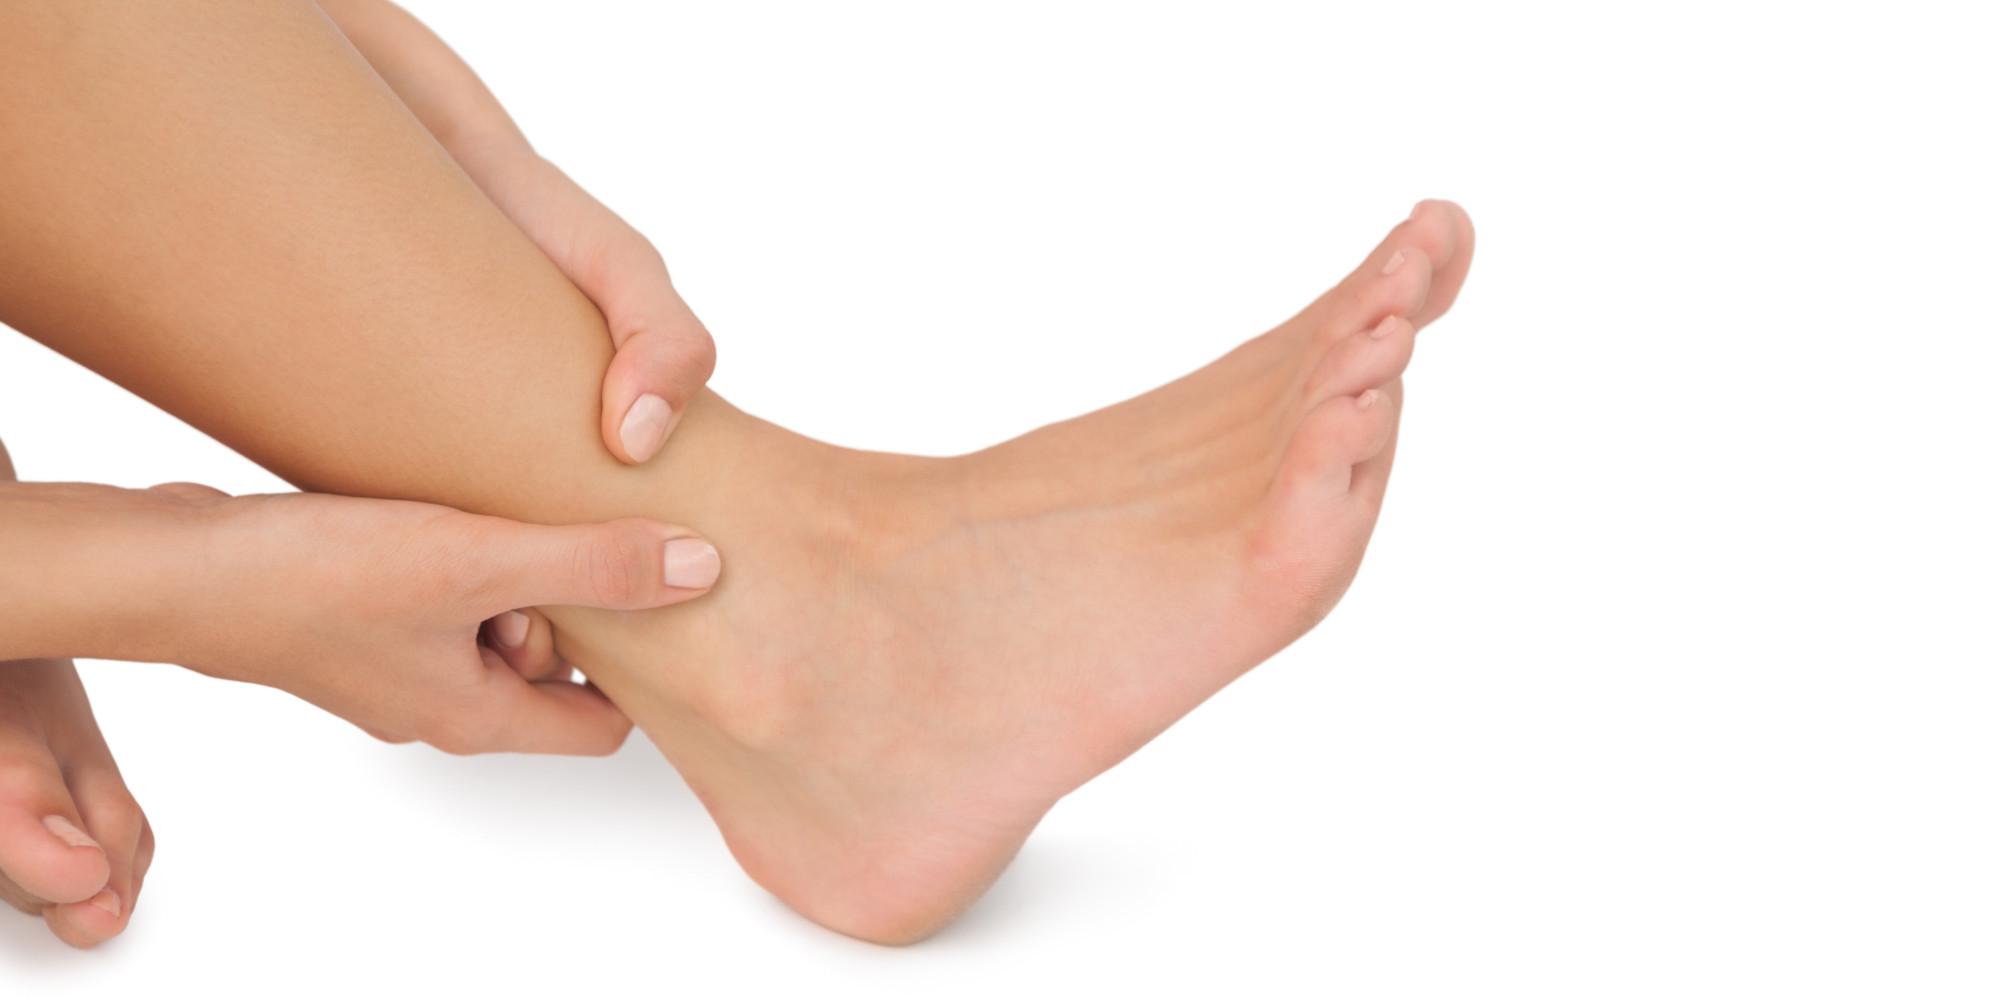 7 Habits That Wreck Your Feet | HuffPost